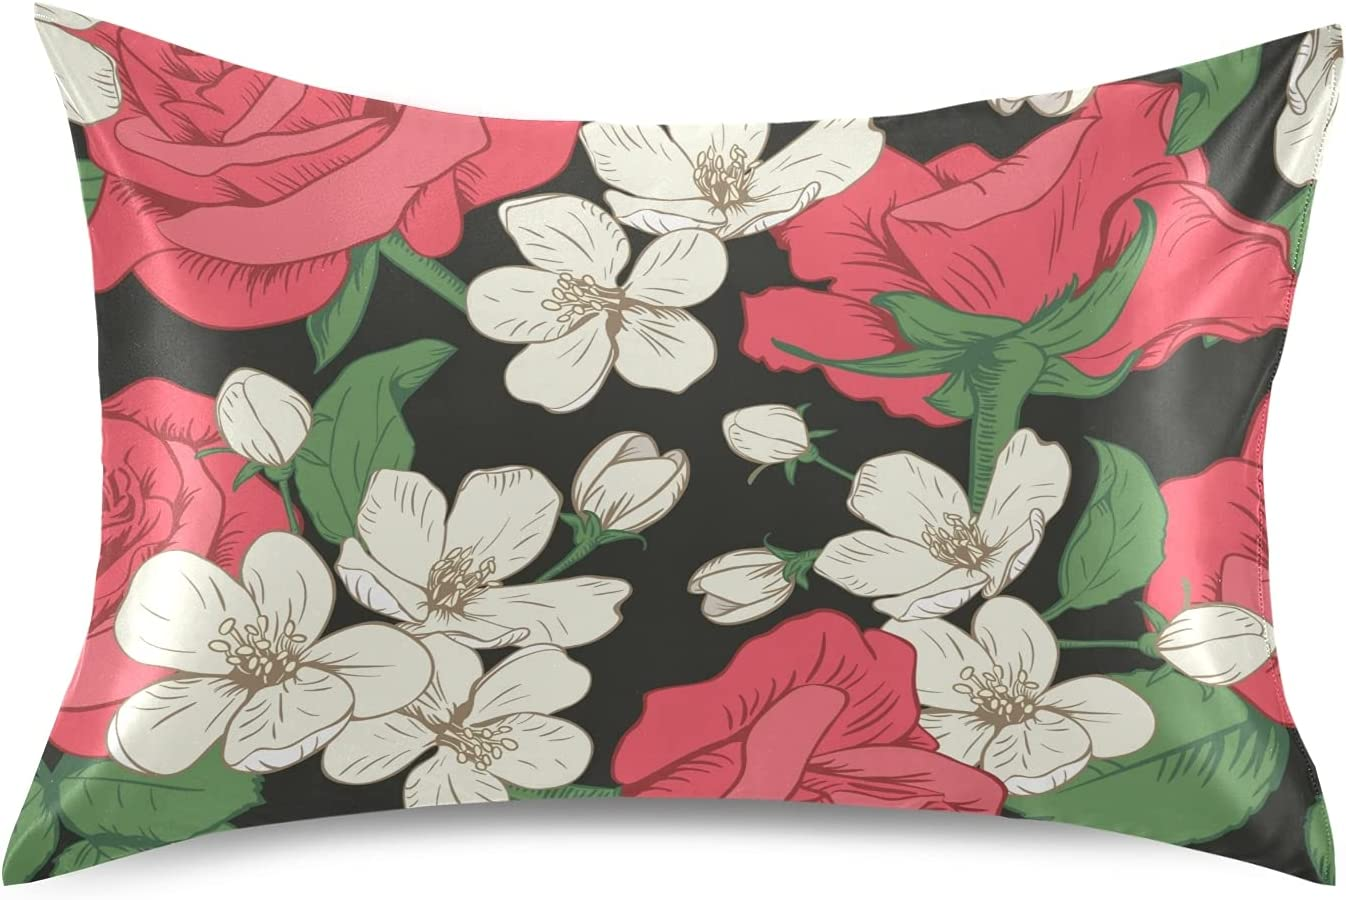 Satin Pillowcase Inexpensive Pillow Covers Red Tree Year-end gift with Cherry Roses White